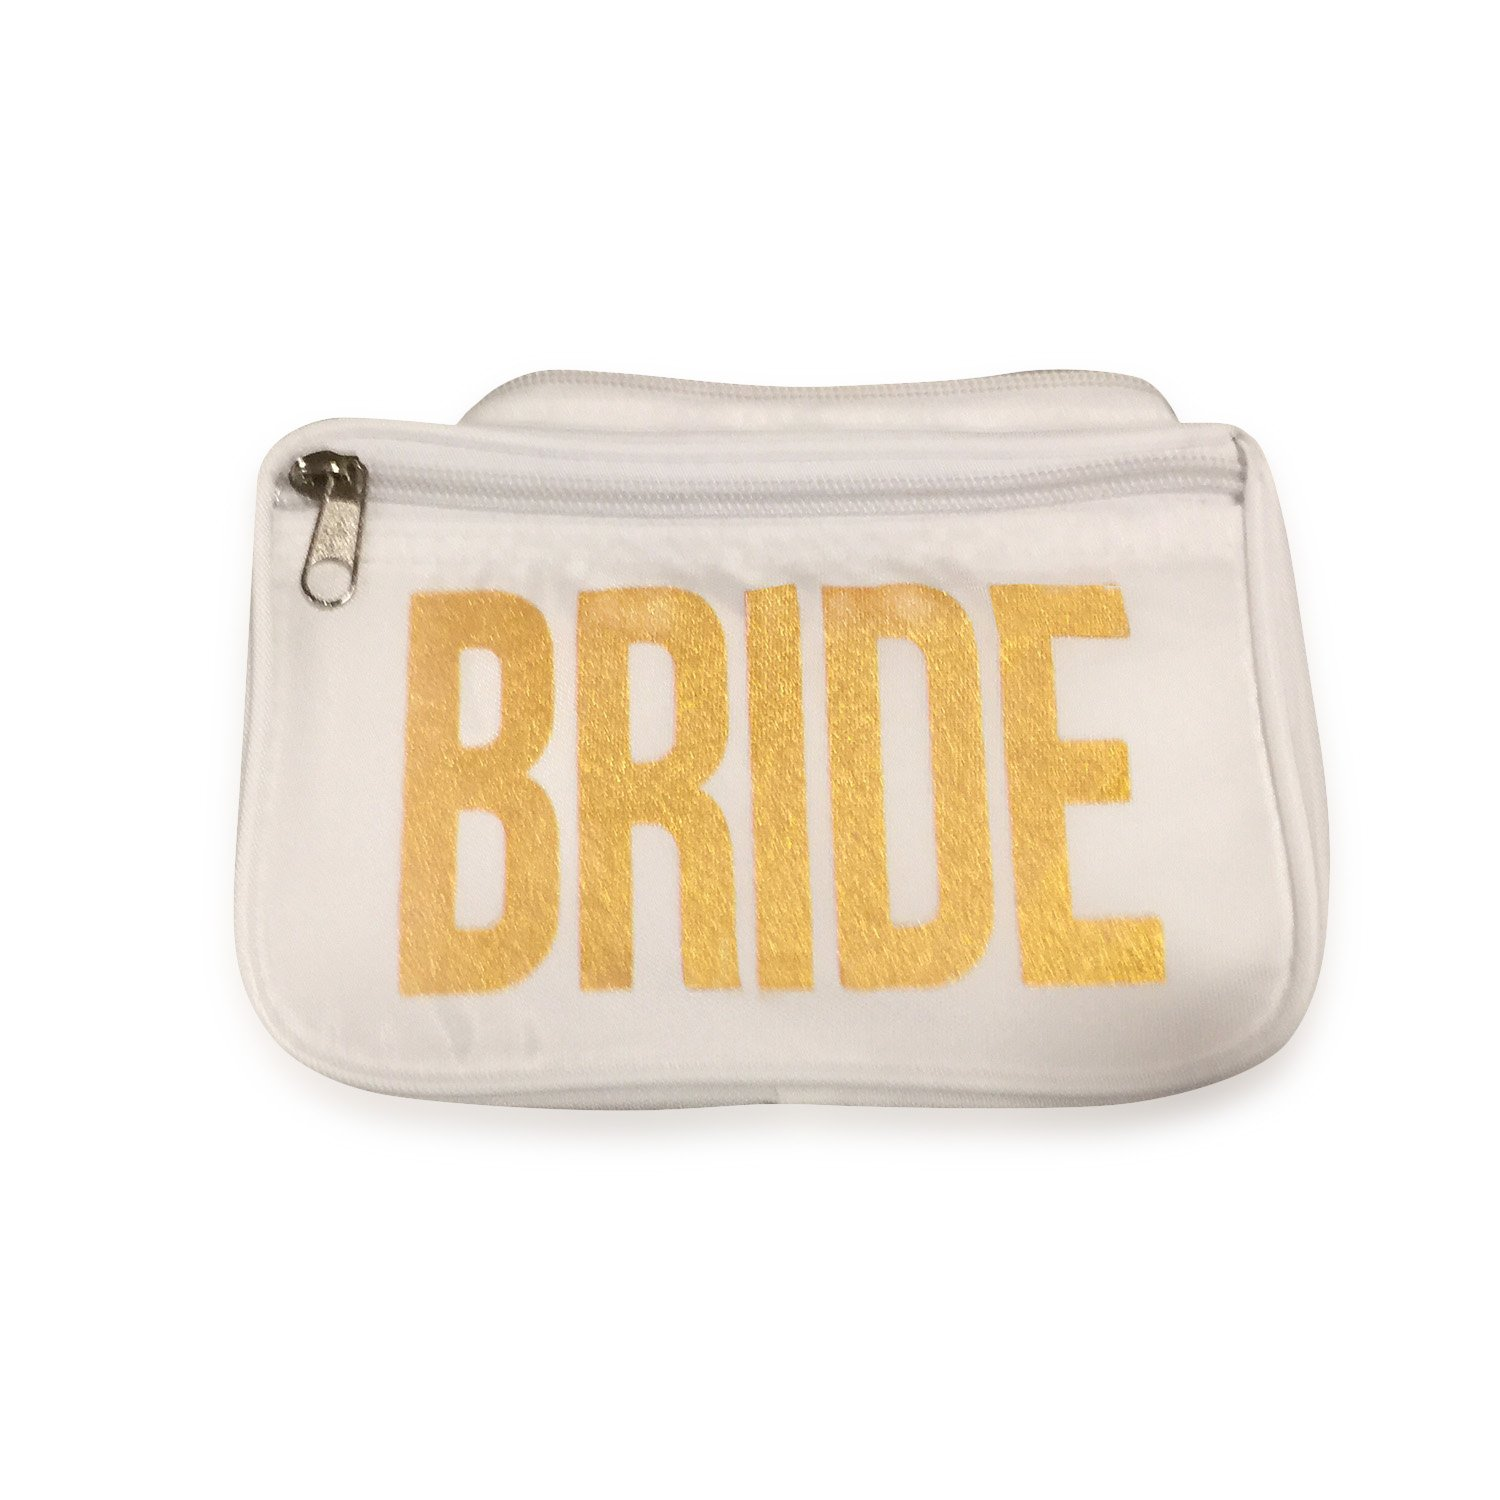 Who's Your Fanny Bride Fanny Pack White Perfect For Weddings Bachelorette Party Parties And More - Adjustable Belt and Strap, Waterproof, Gold print